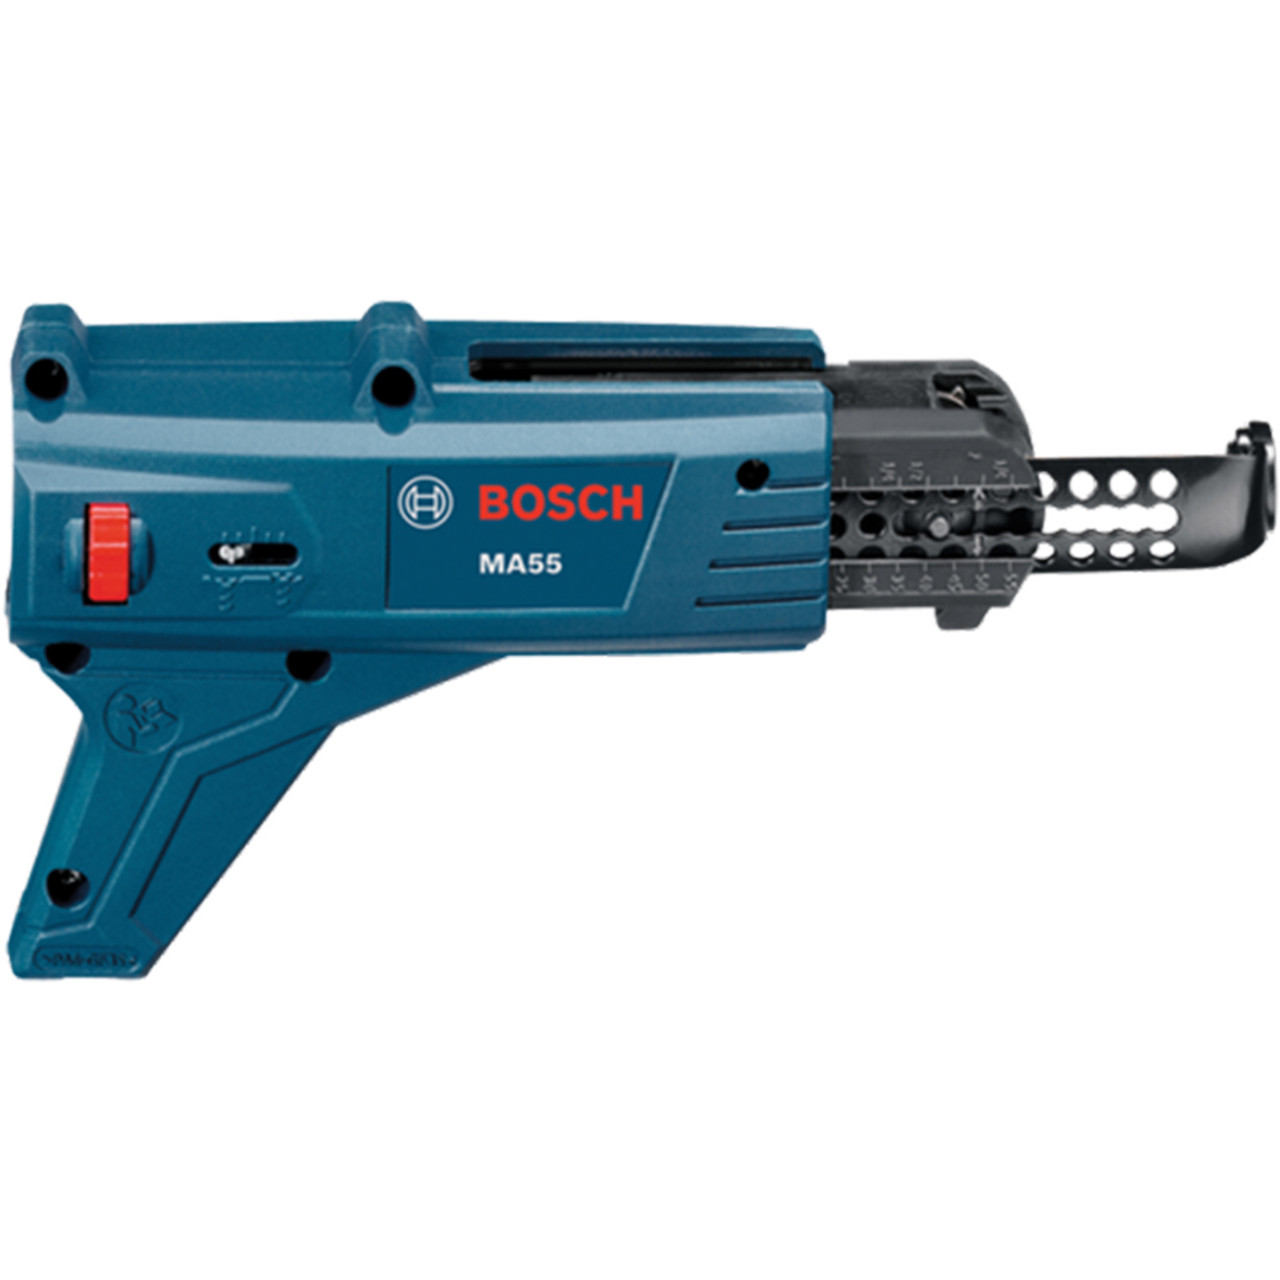 Bosch MA55 Auto-Feed Attachment for Screwguns